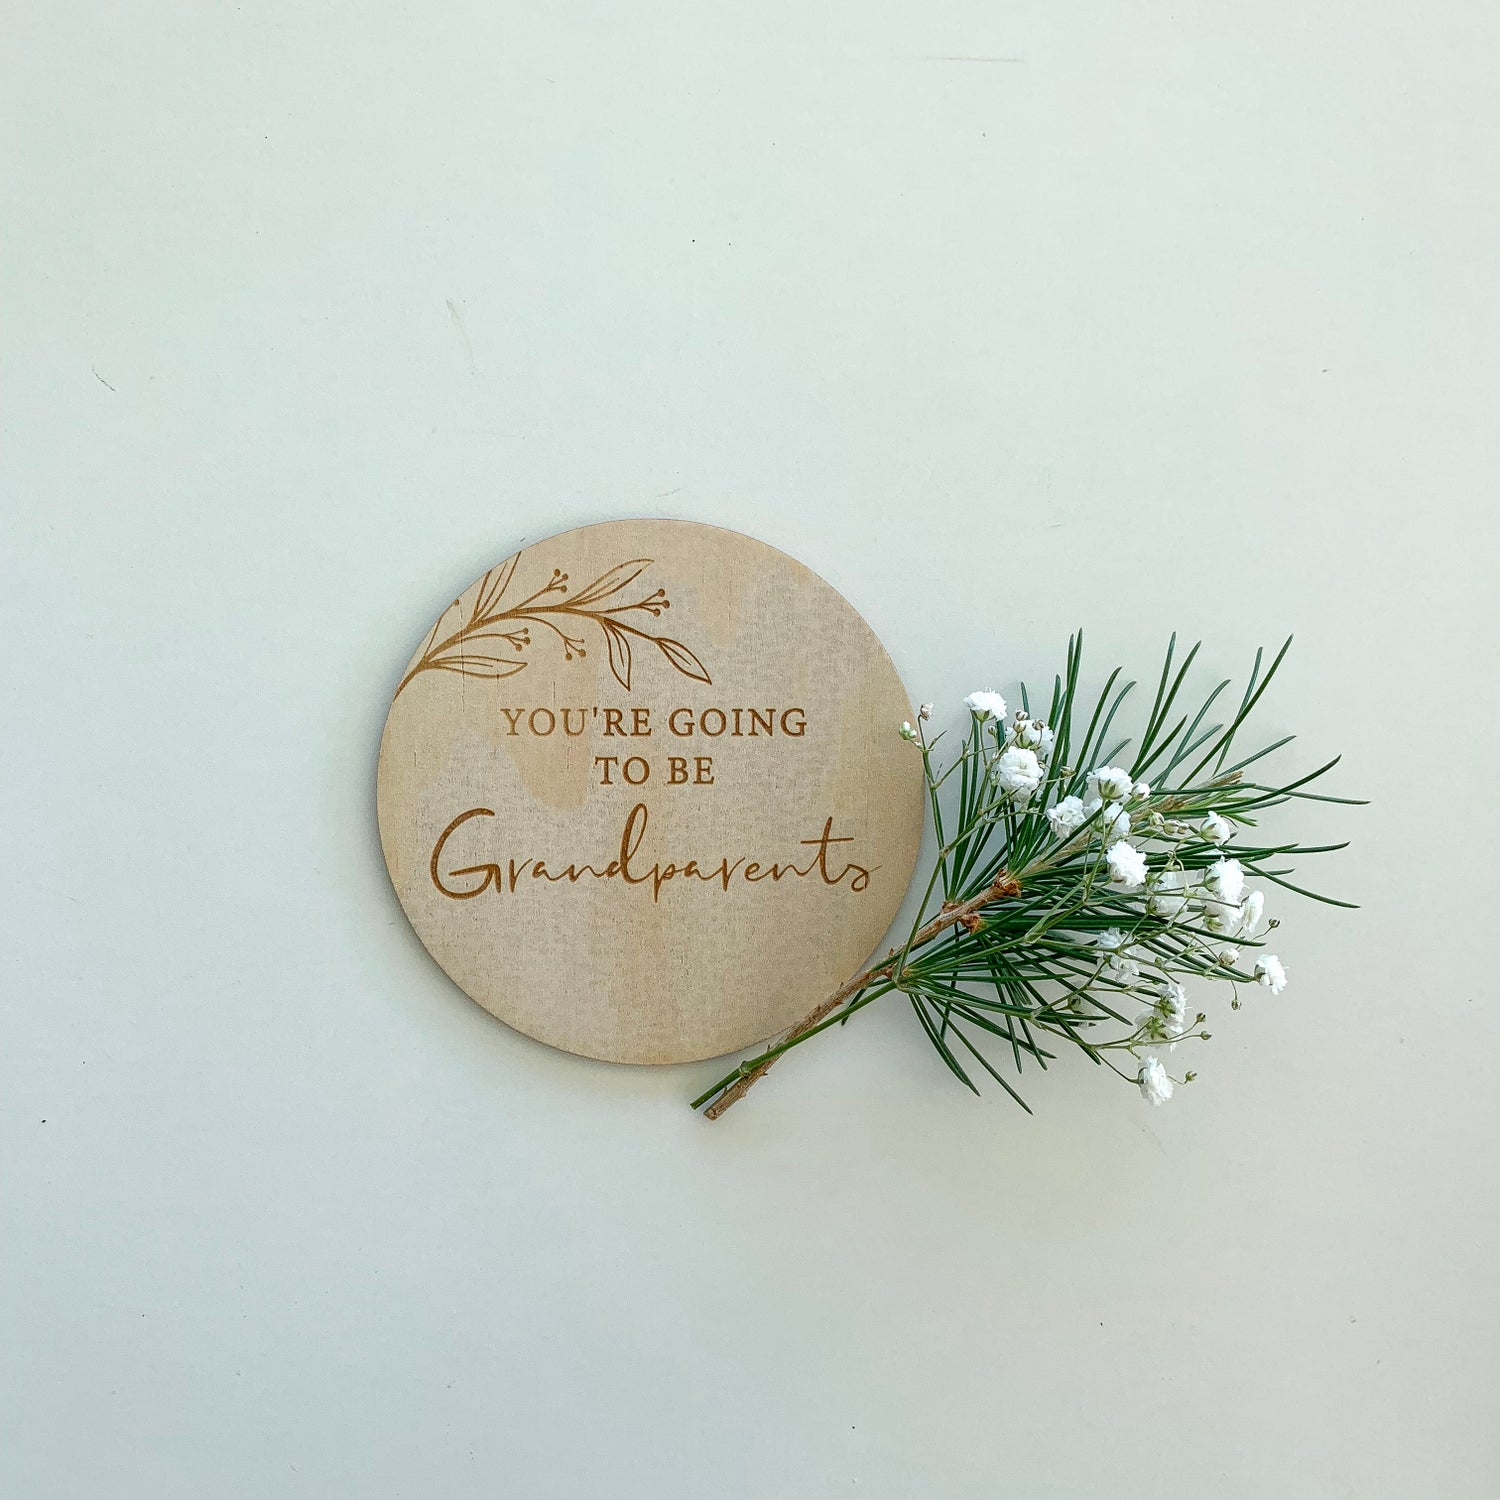 Image of You're going to/ Will you be... | Announcement plaque